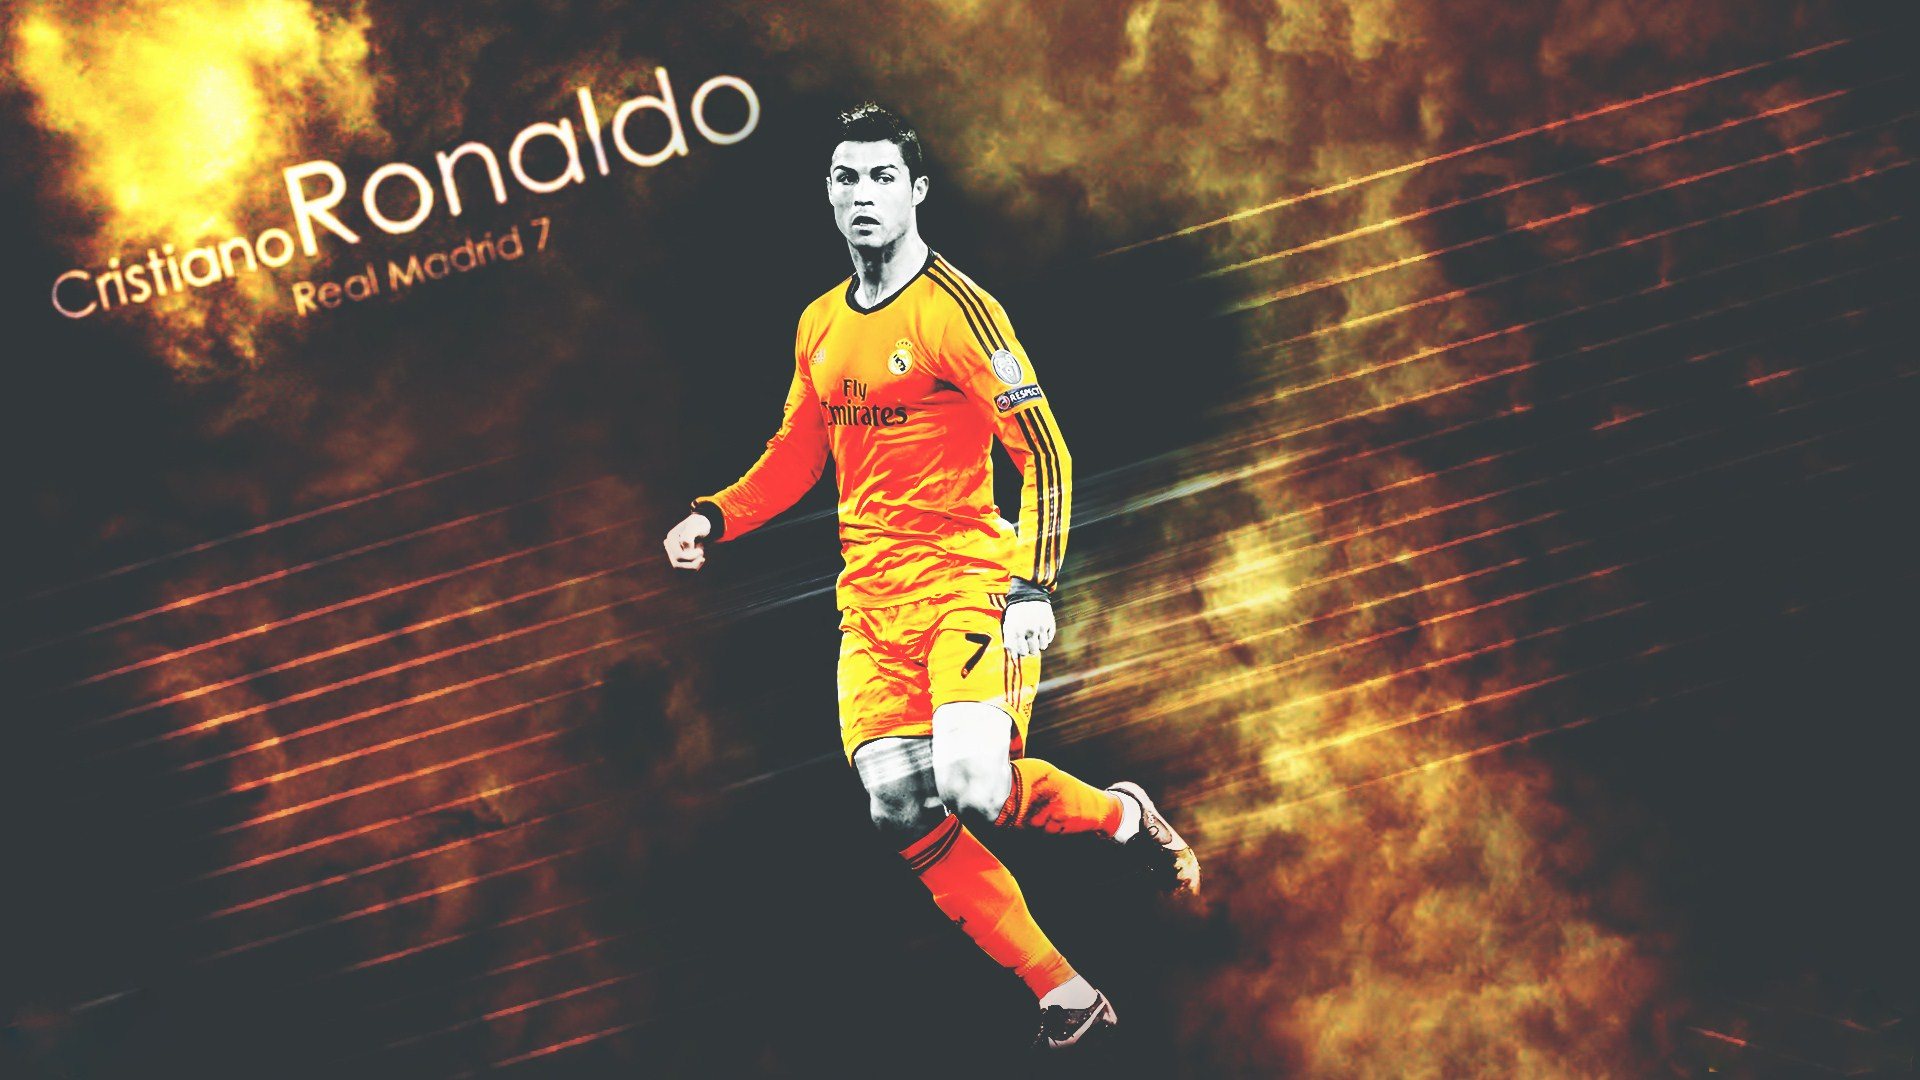 Cristiano Ronaldo Wallpapers, Pictures, Images